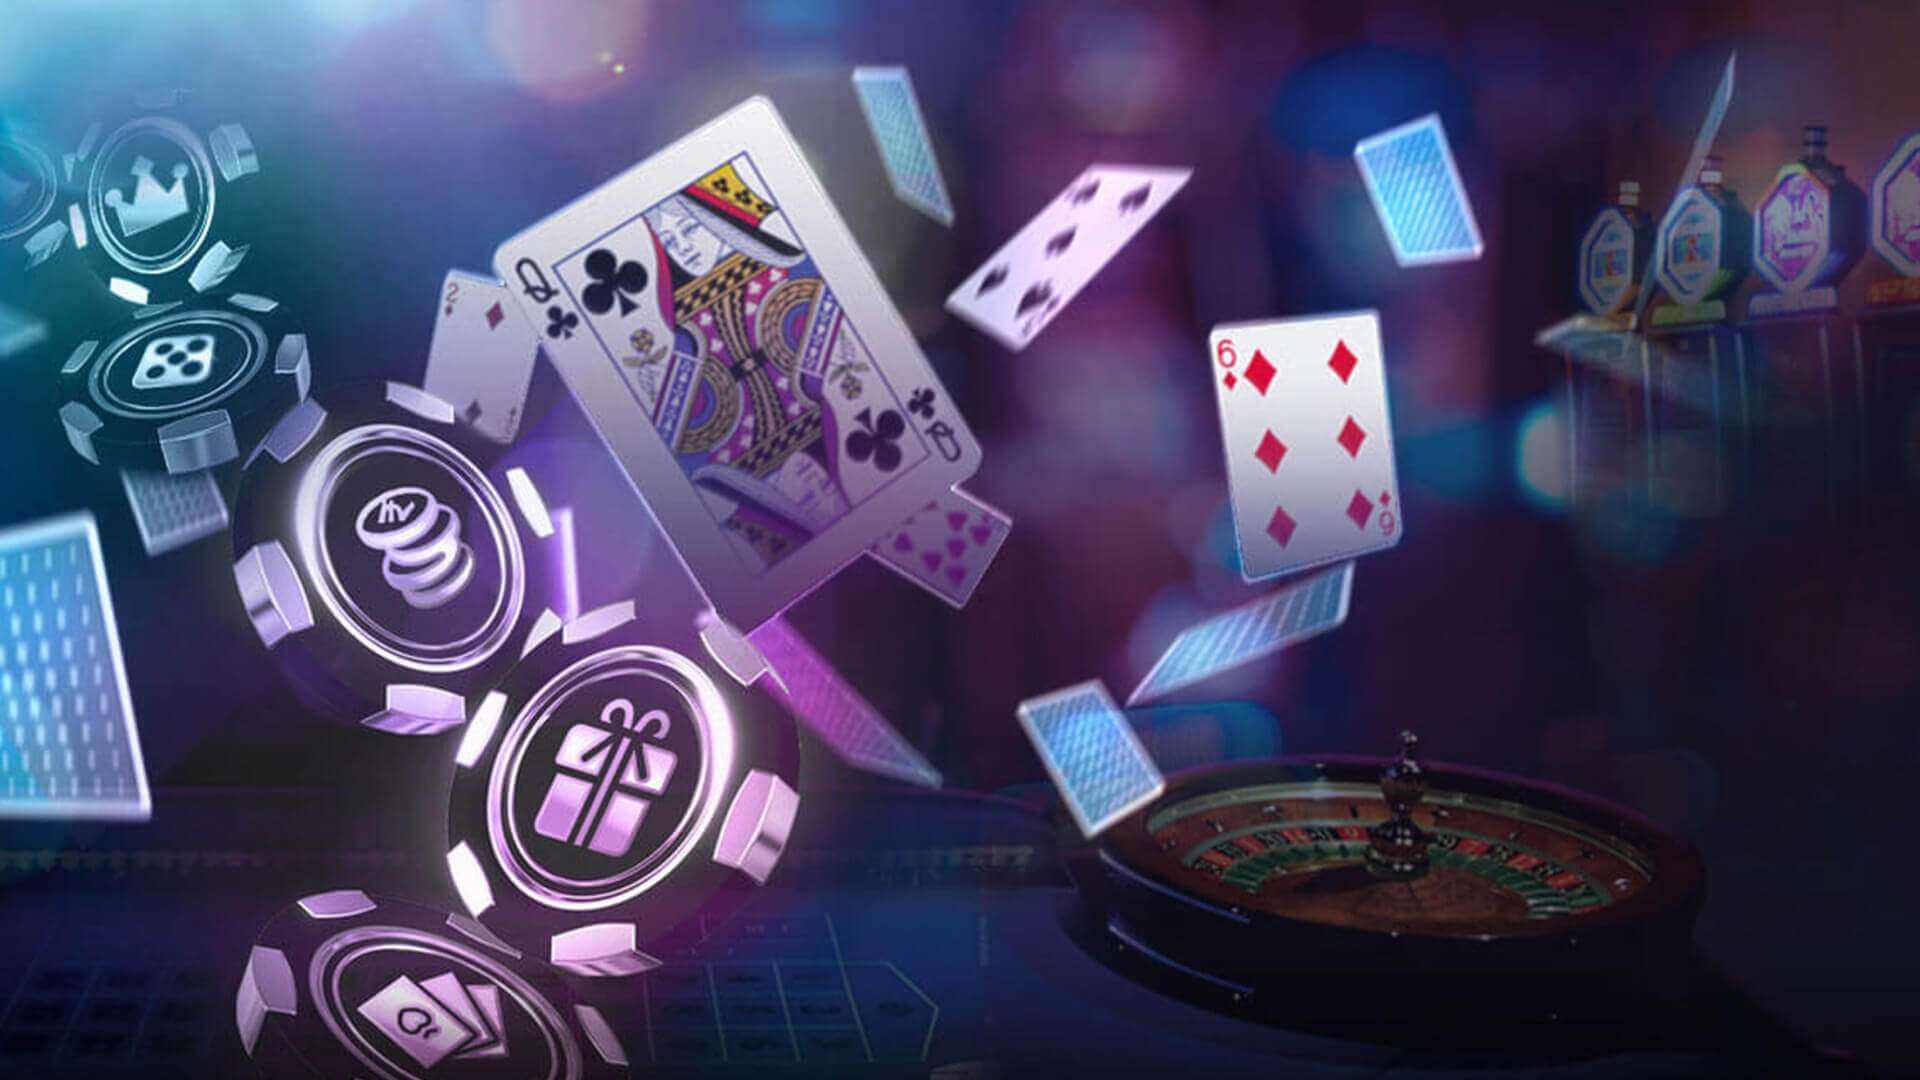 A comparison of online and real casinos